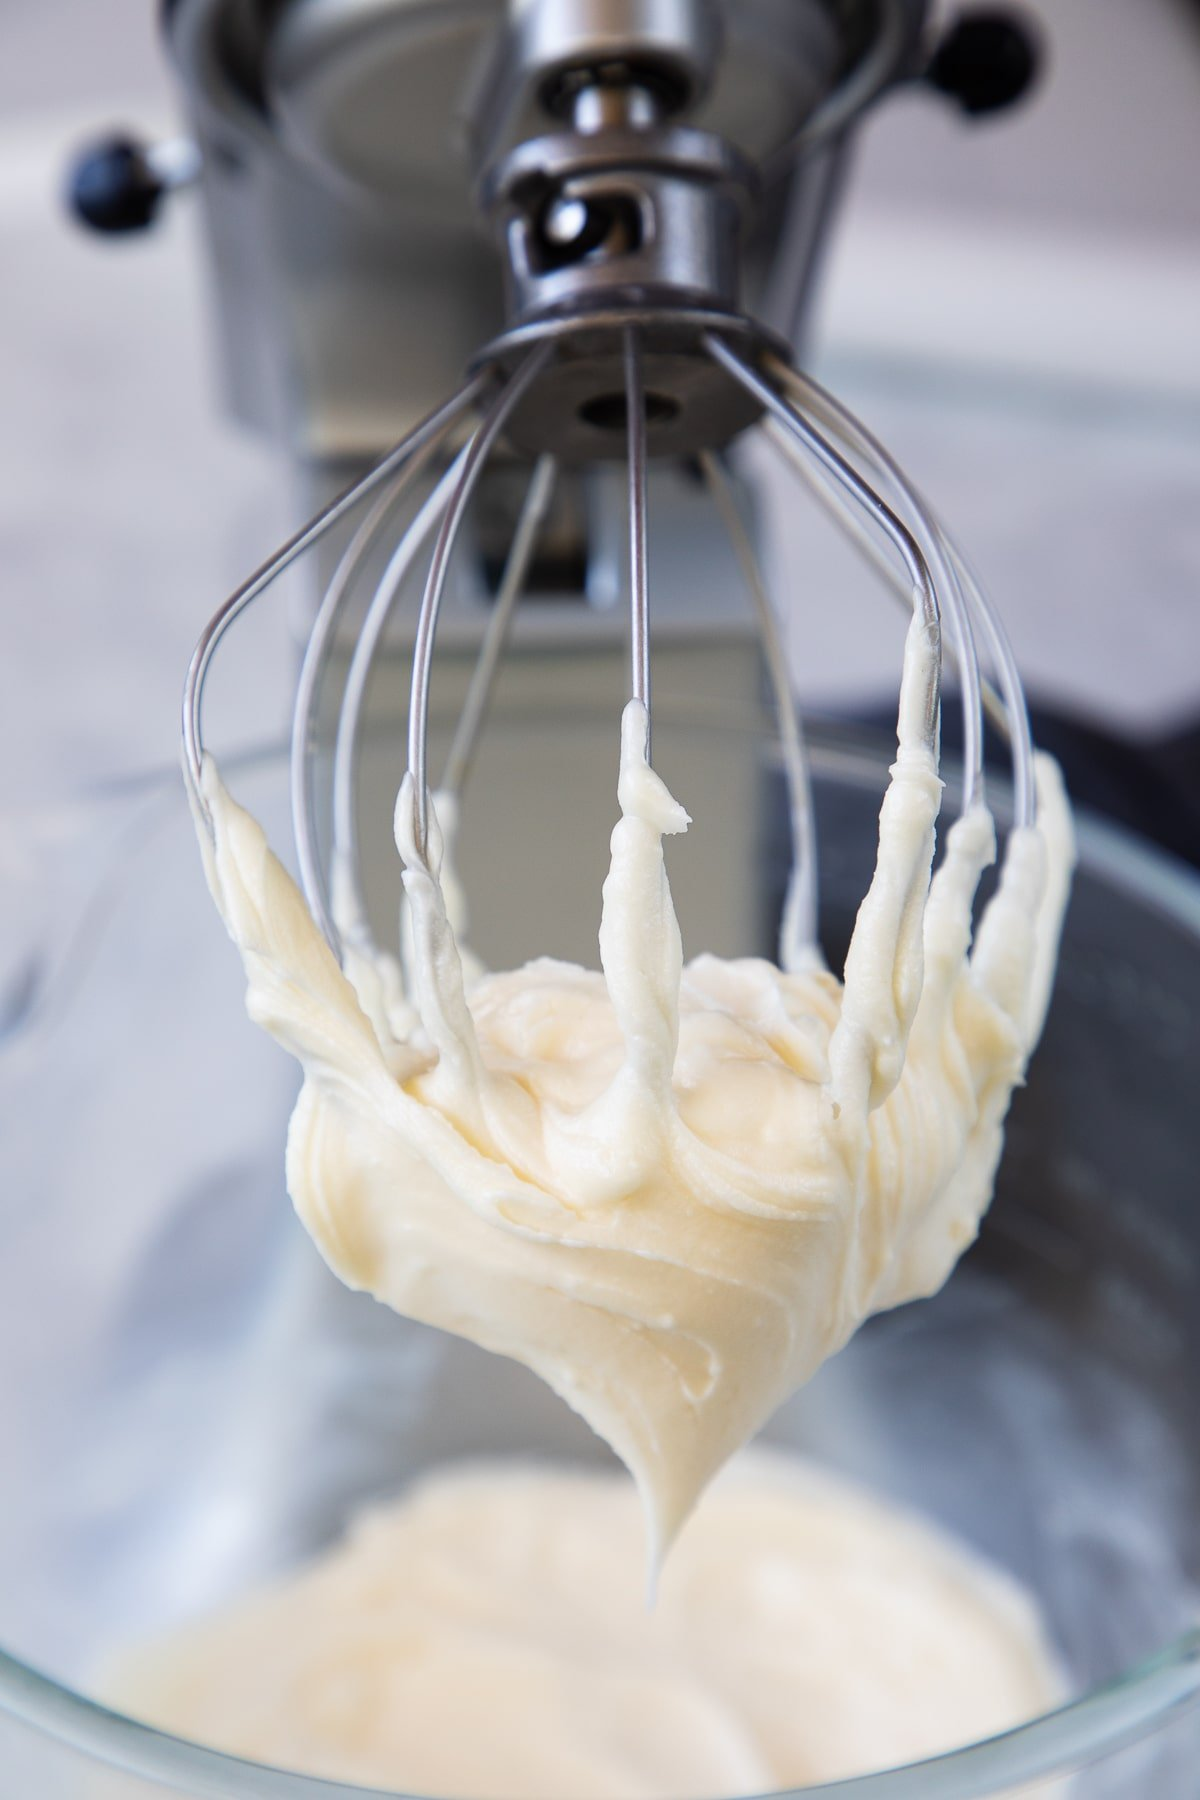 Cream Cheese Frosting on beater